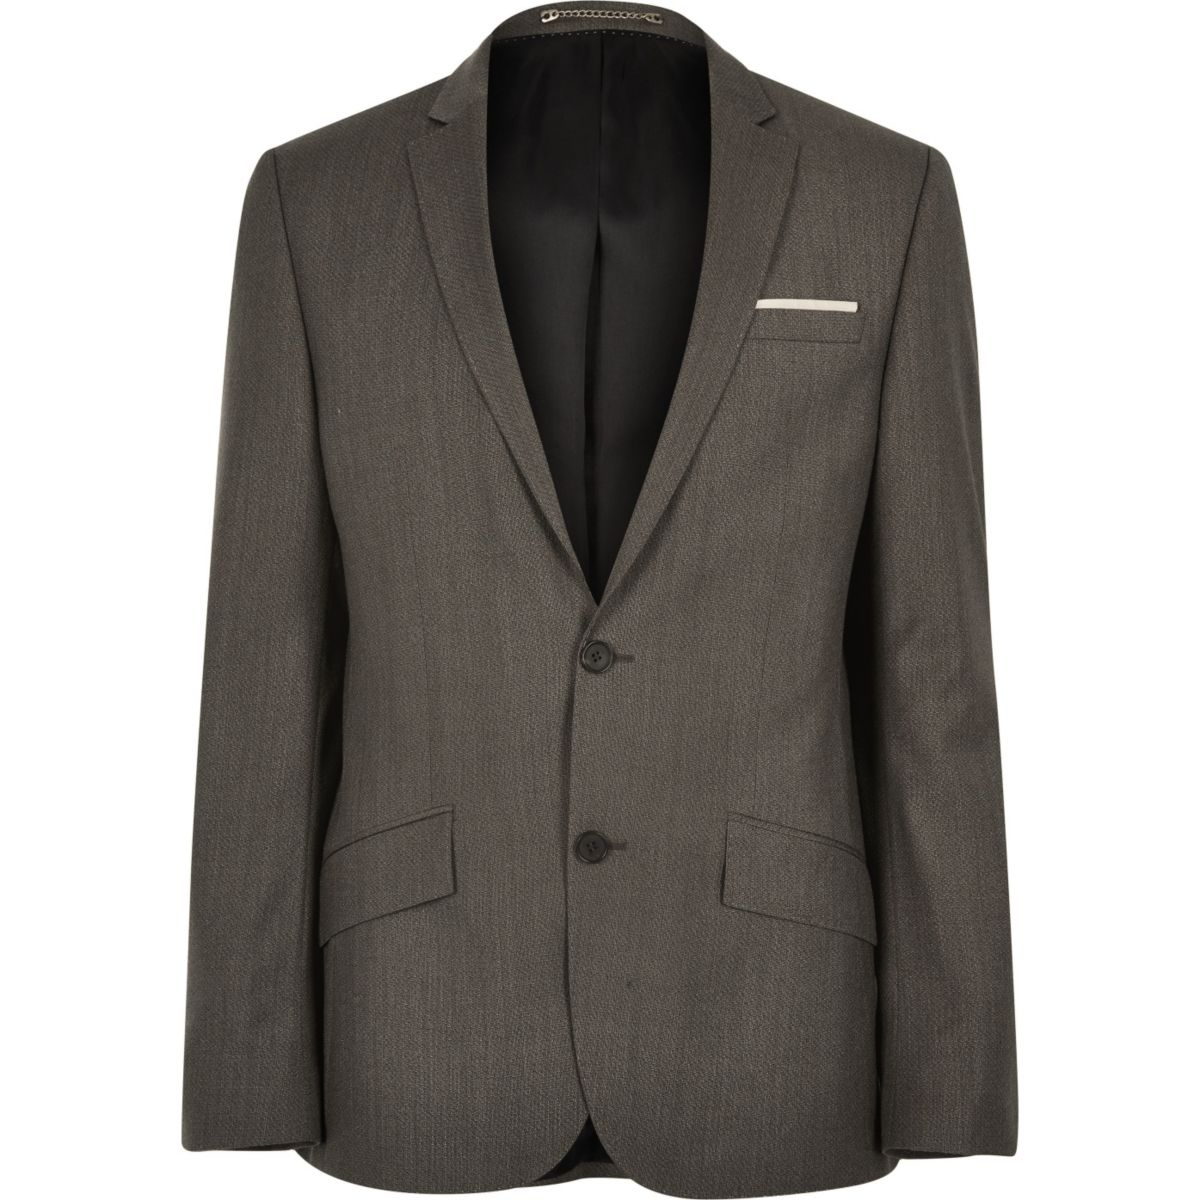 Brown premium wool suit jacket